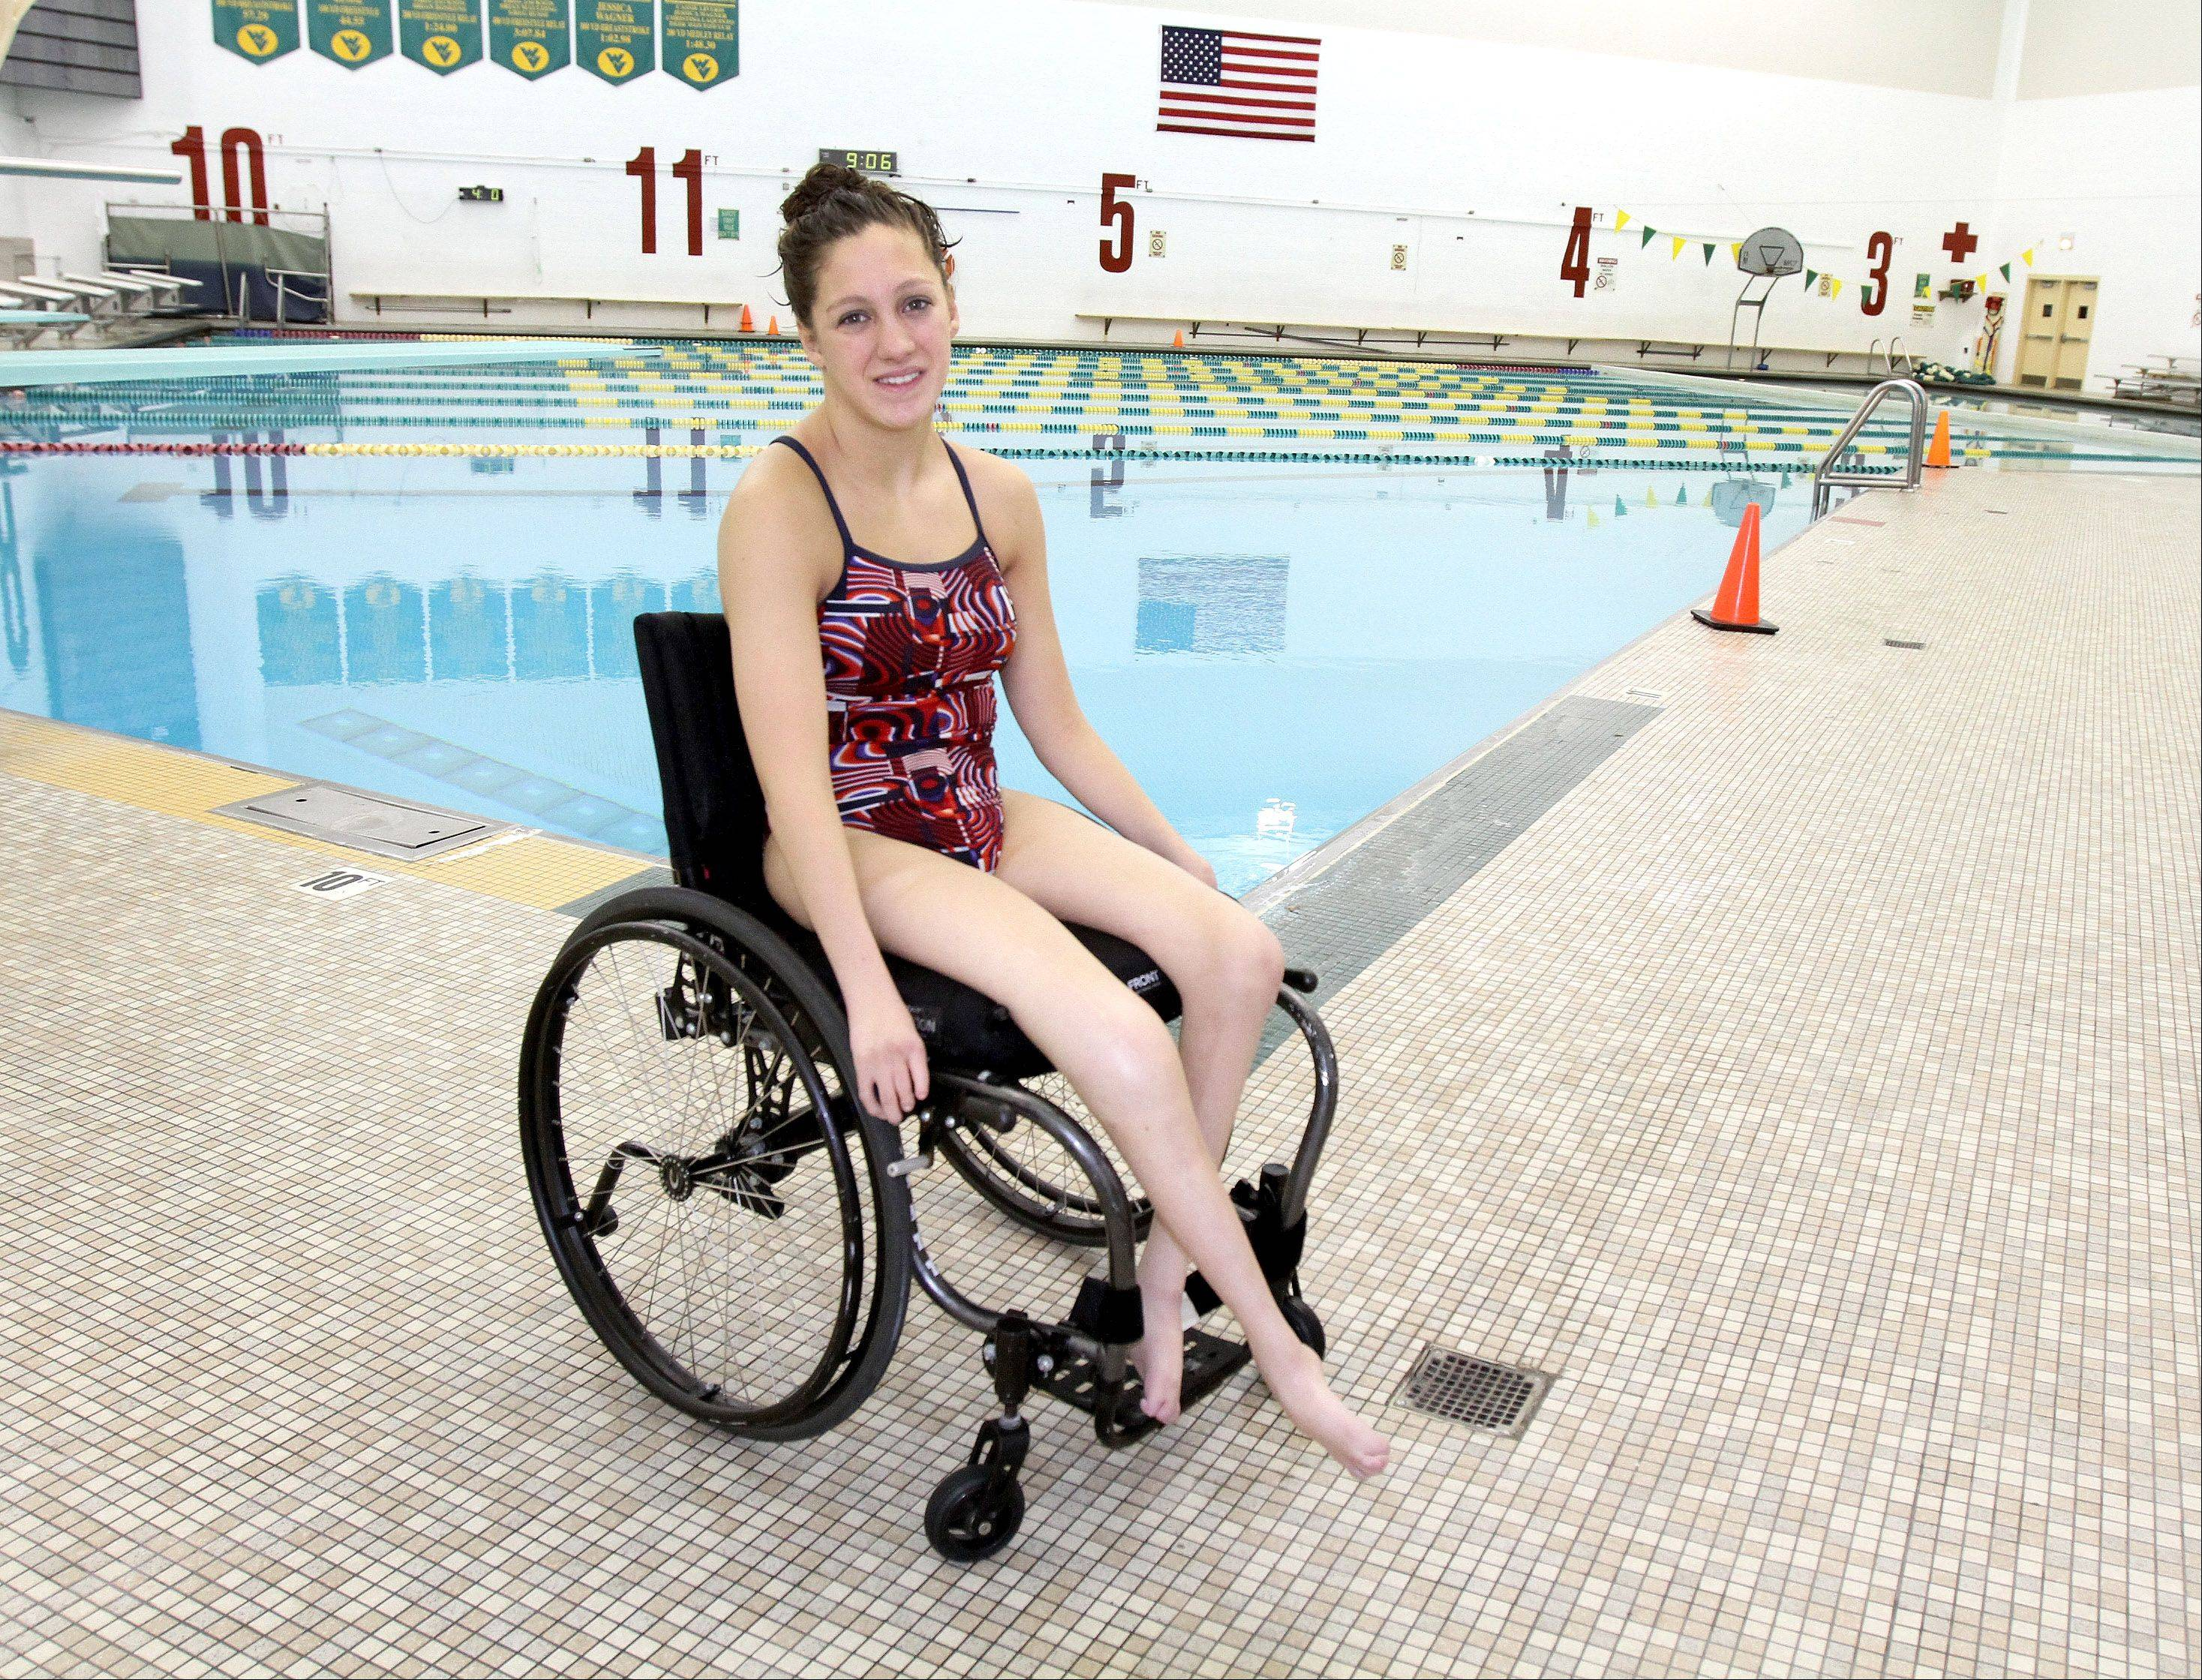 Naperville teen Alyssa Gialamas is excited to represent Waubonsie Valley High School in this year's Paralympics in London.